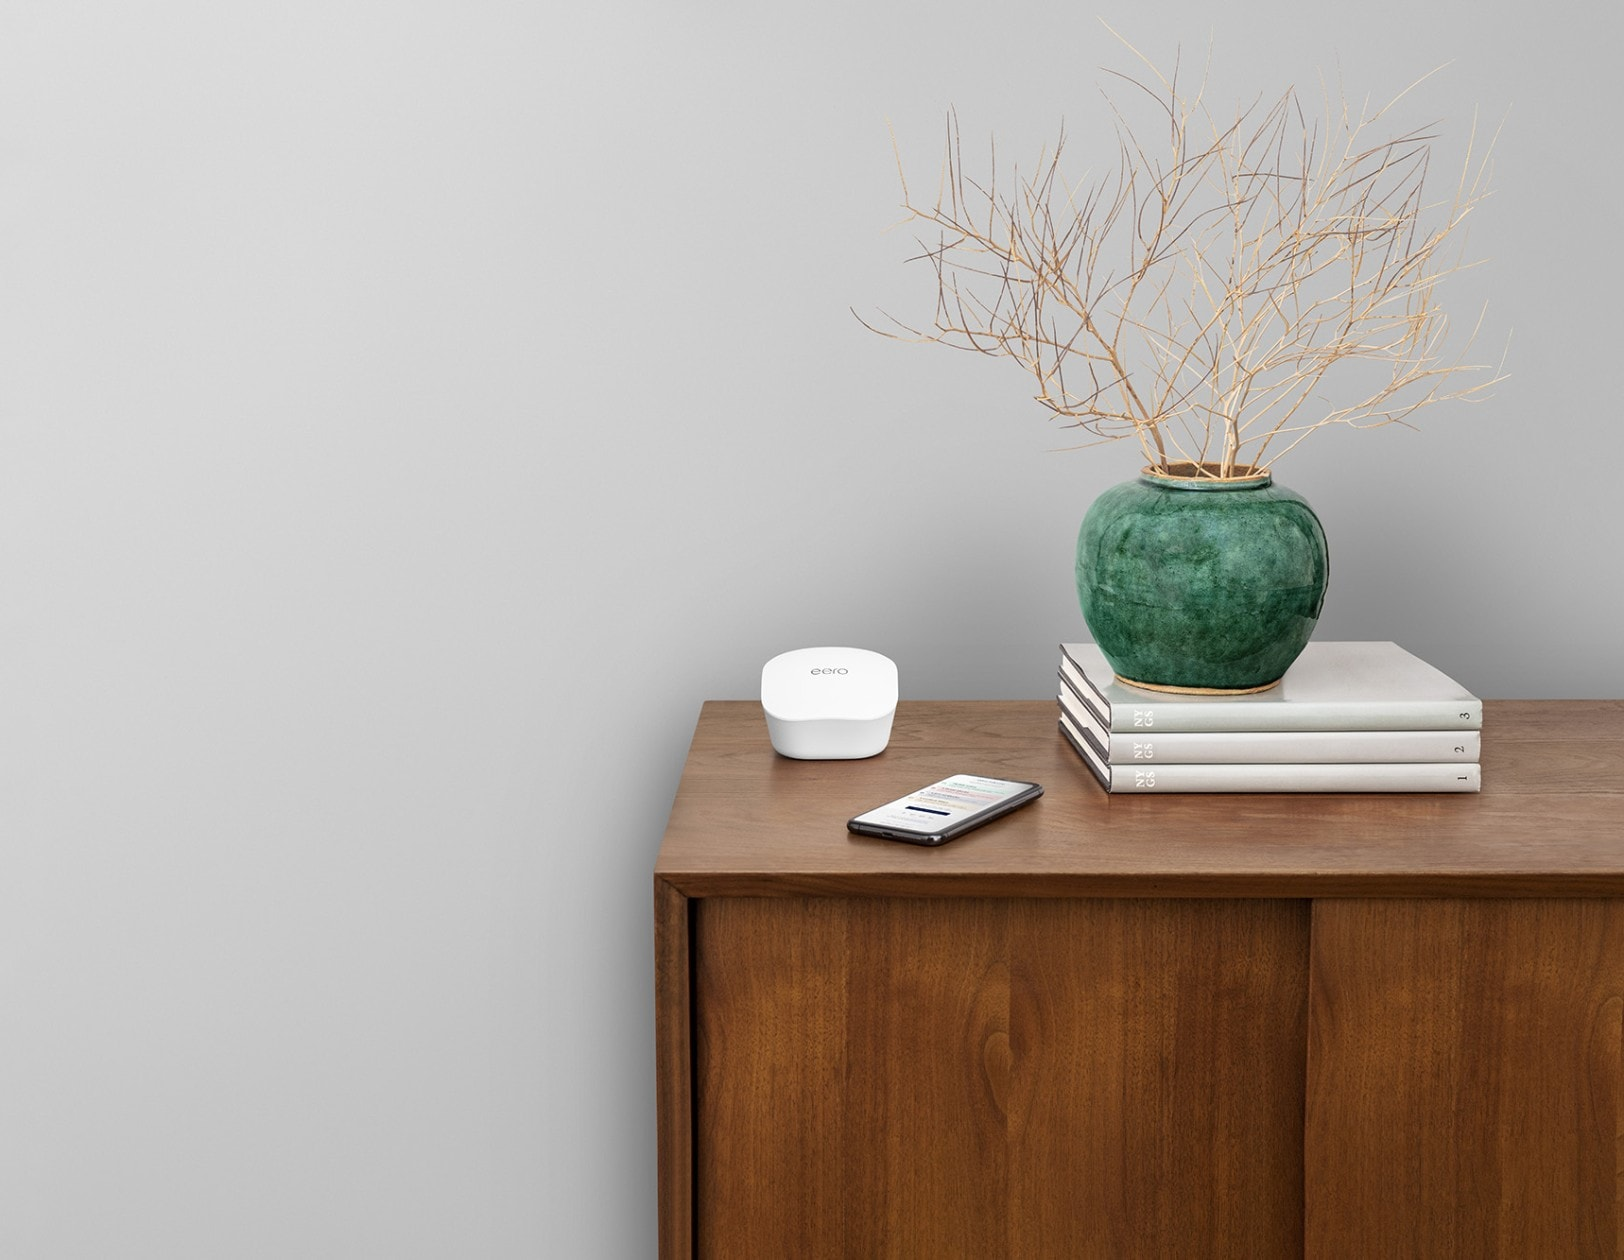 Eero is one of our favorite routers now that Apple doesn't make any